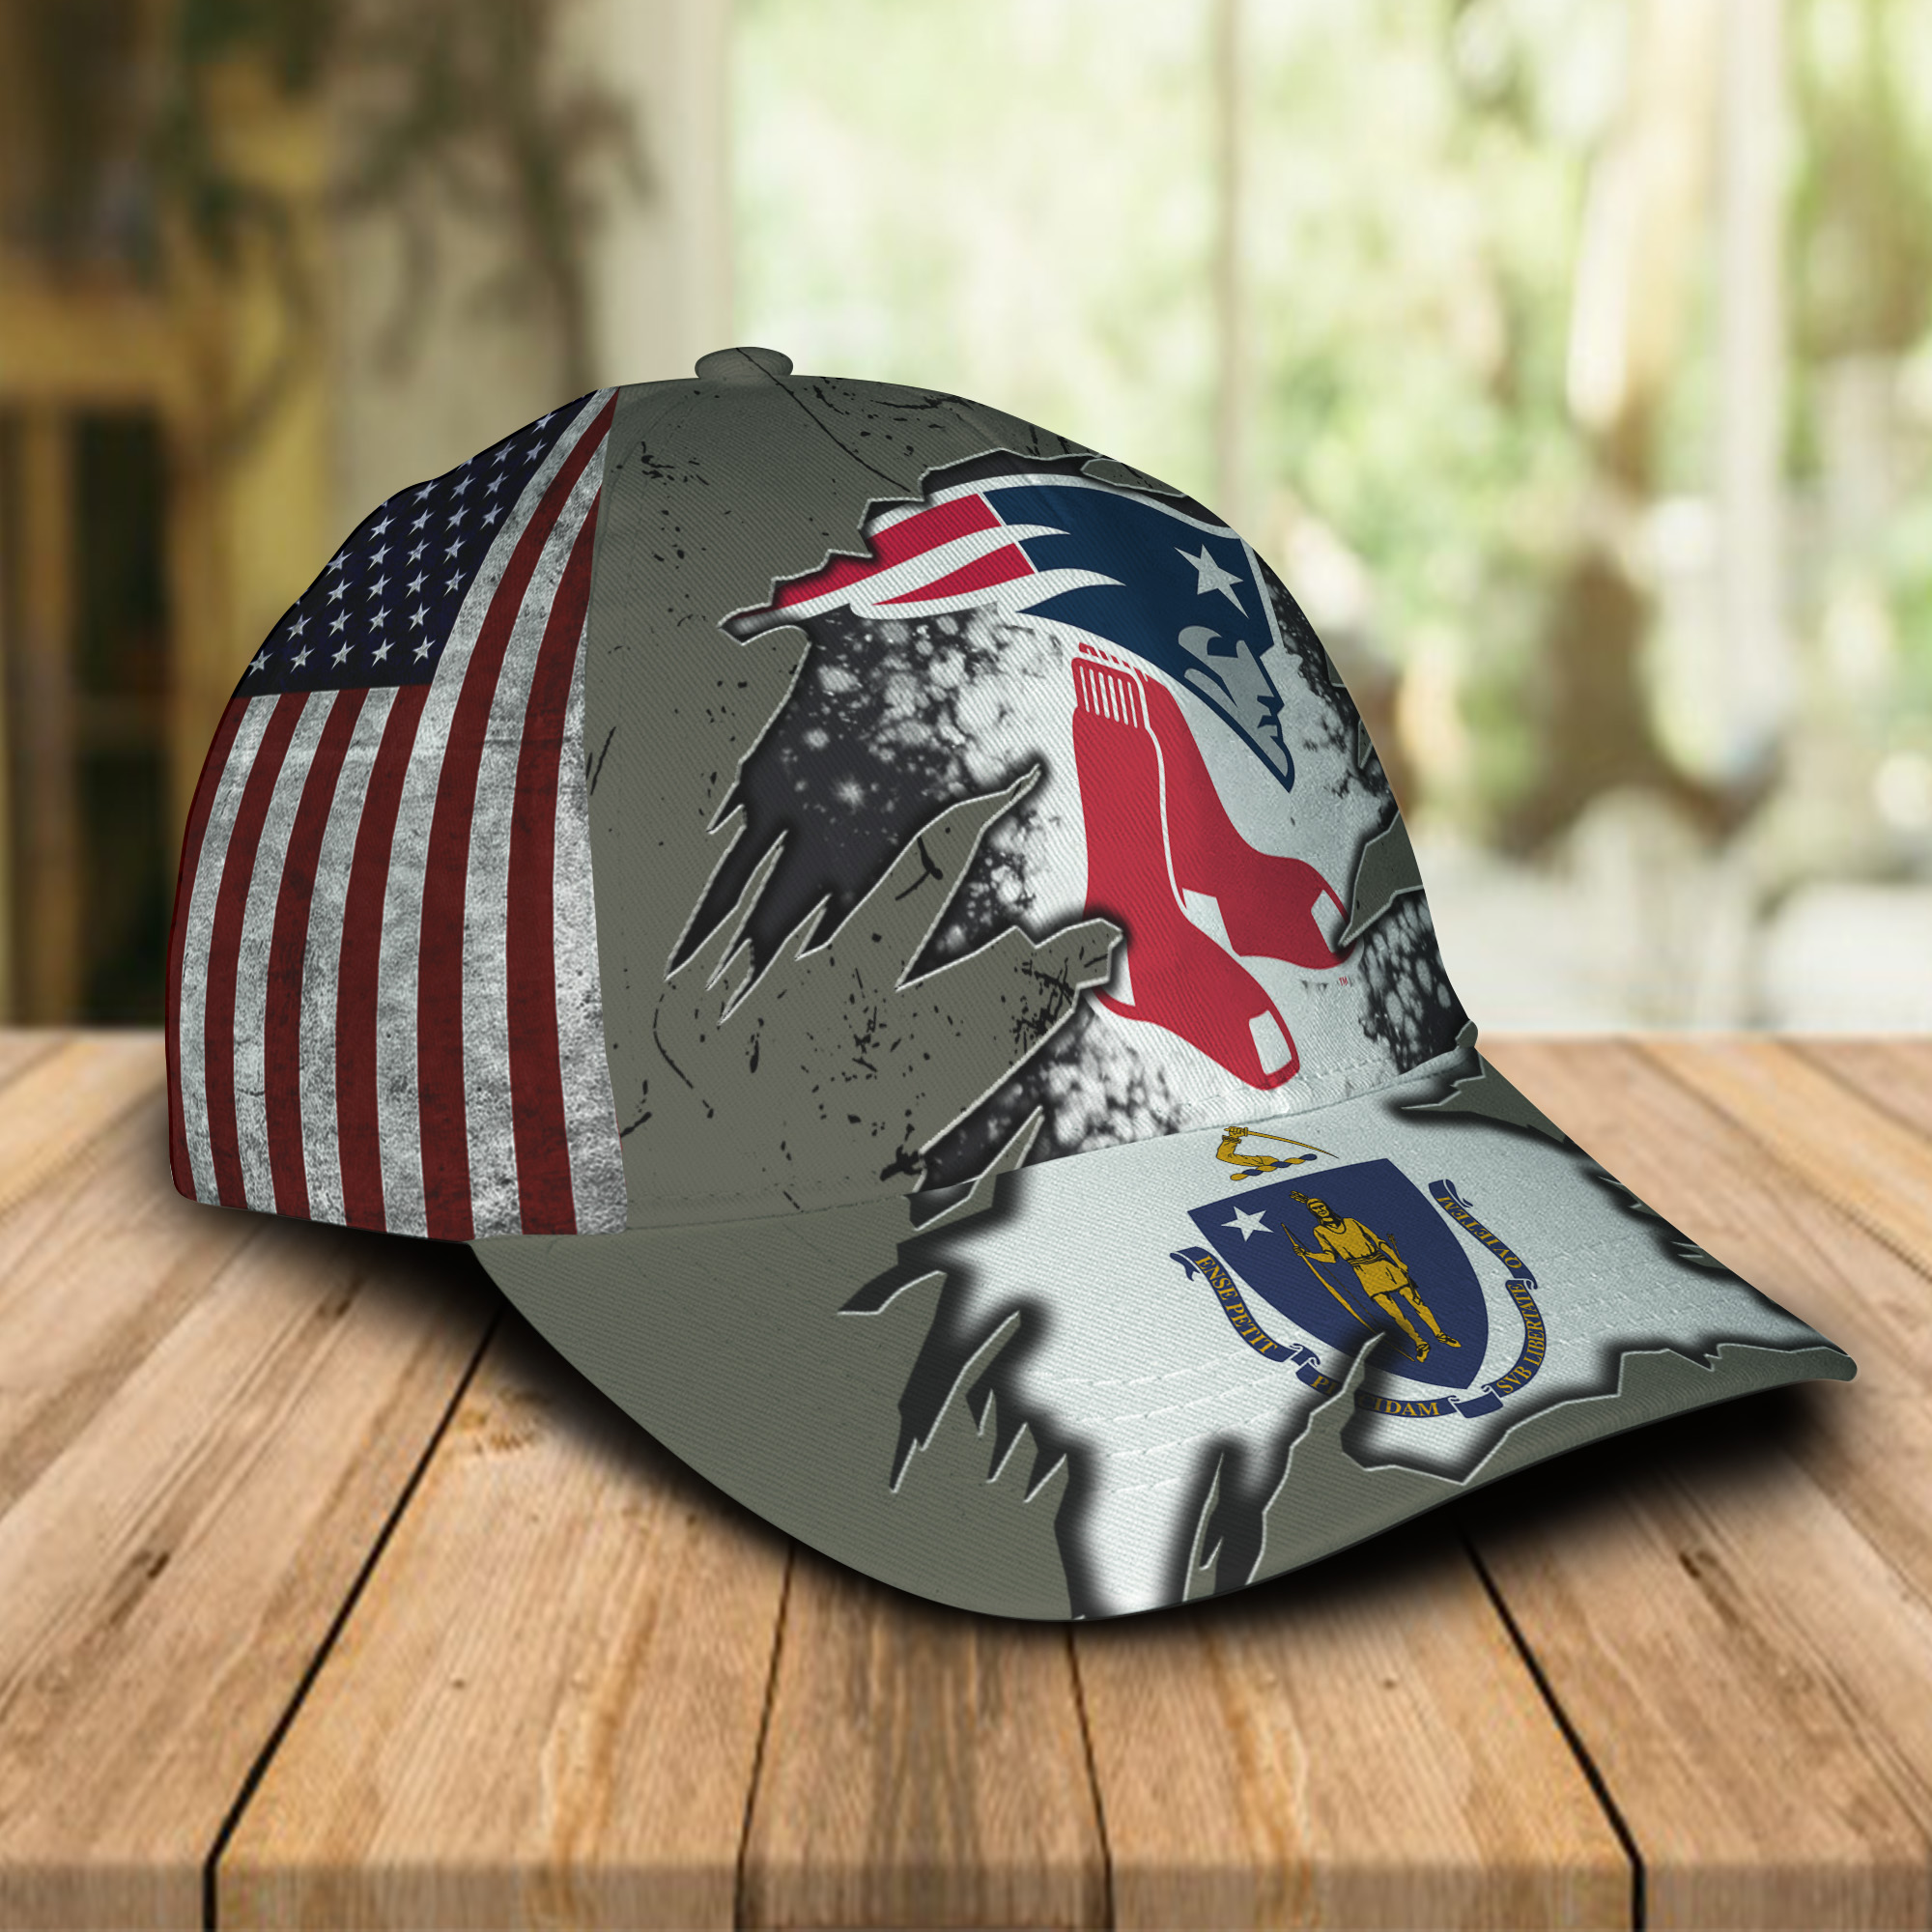 New England Patriots And Boston Red Sox Caps & Hats-1